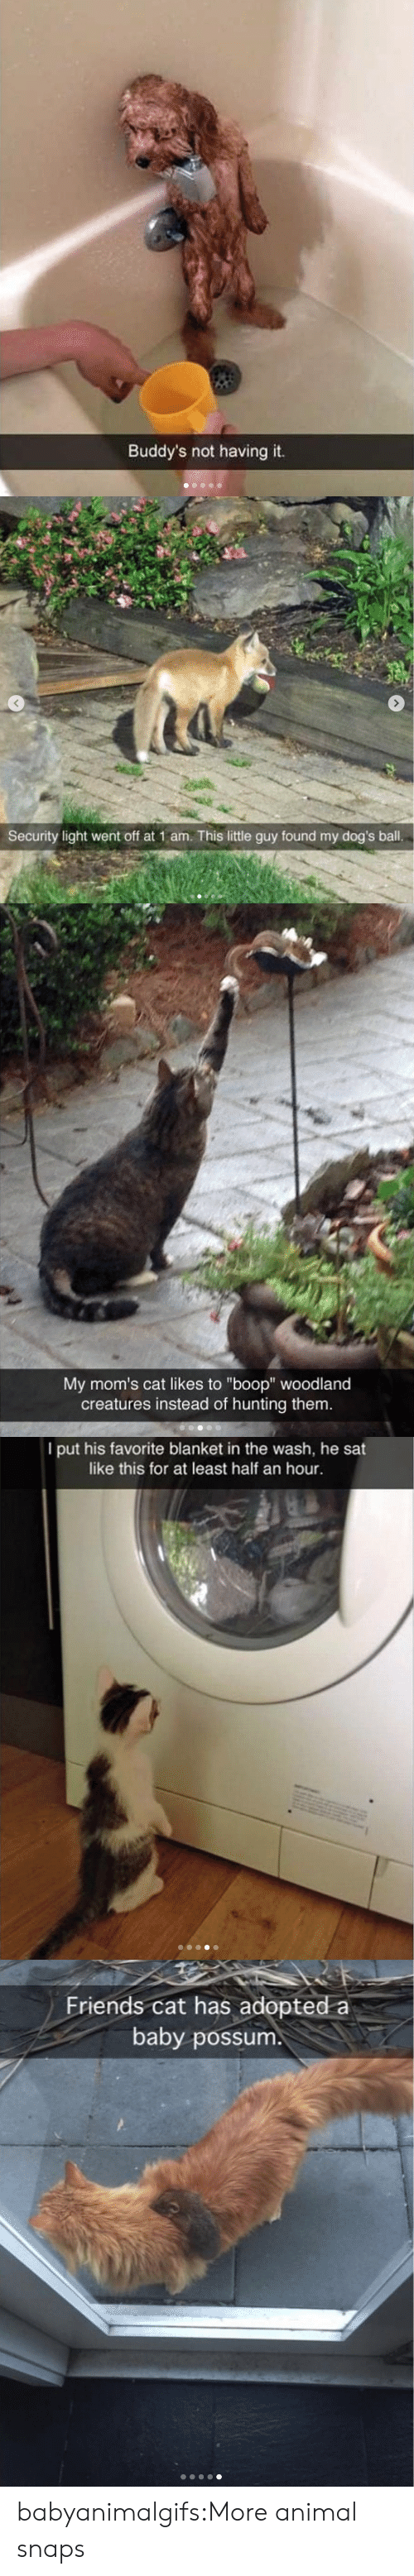 """Possum: Buddy's not having it.   Security light went off at 1 am. This little guy found my dog's ball.   My mom's cat likes to """"boop"""" woodland  creatures instead of hunting them.   I put his favorite blanket in the wash, he sat  like this for at least half an hour.   Friends cat has adopted a  baby possum babyanimalgifs:More animal snaps"""